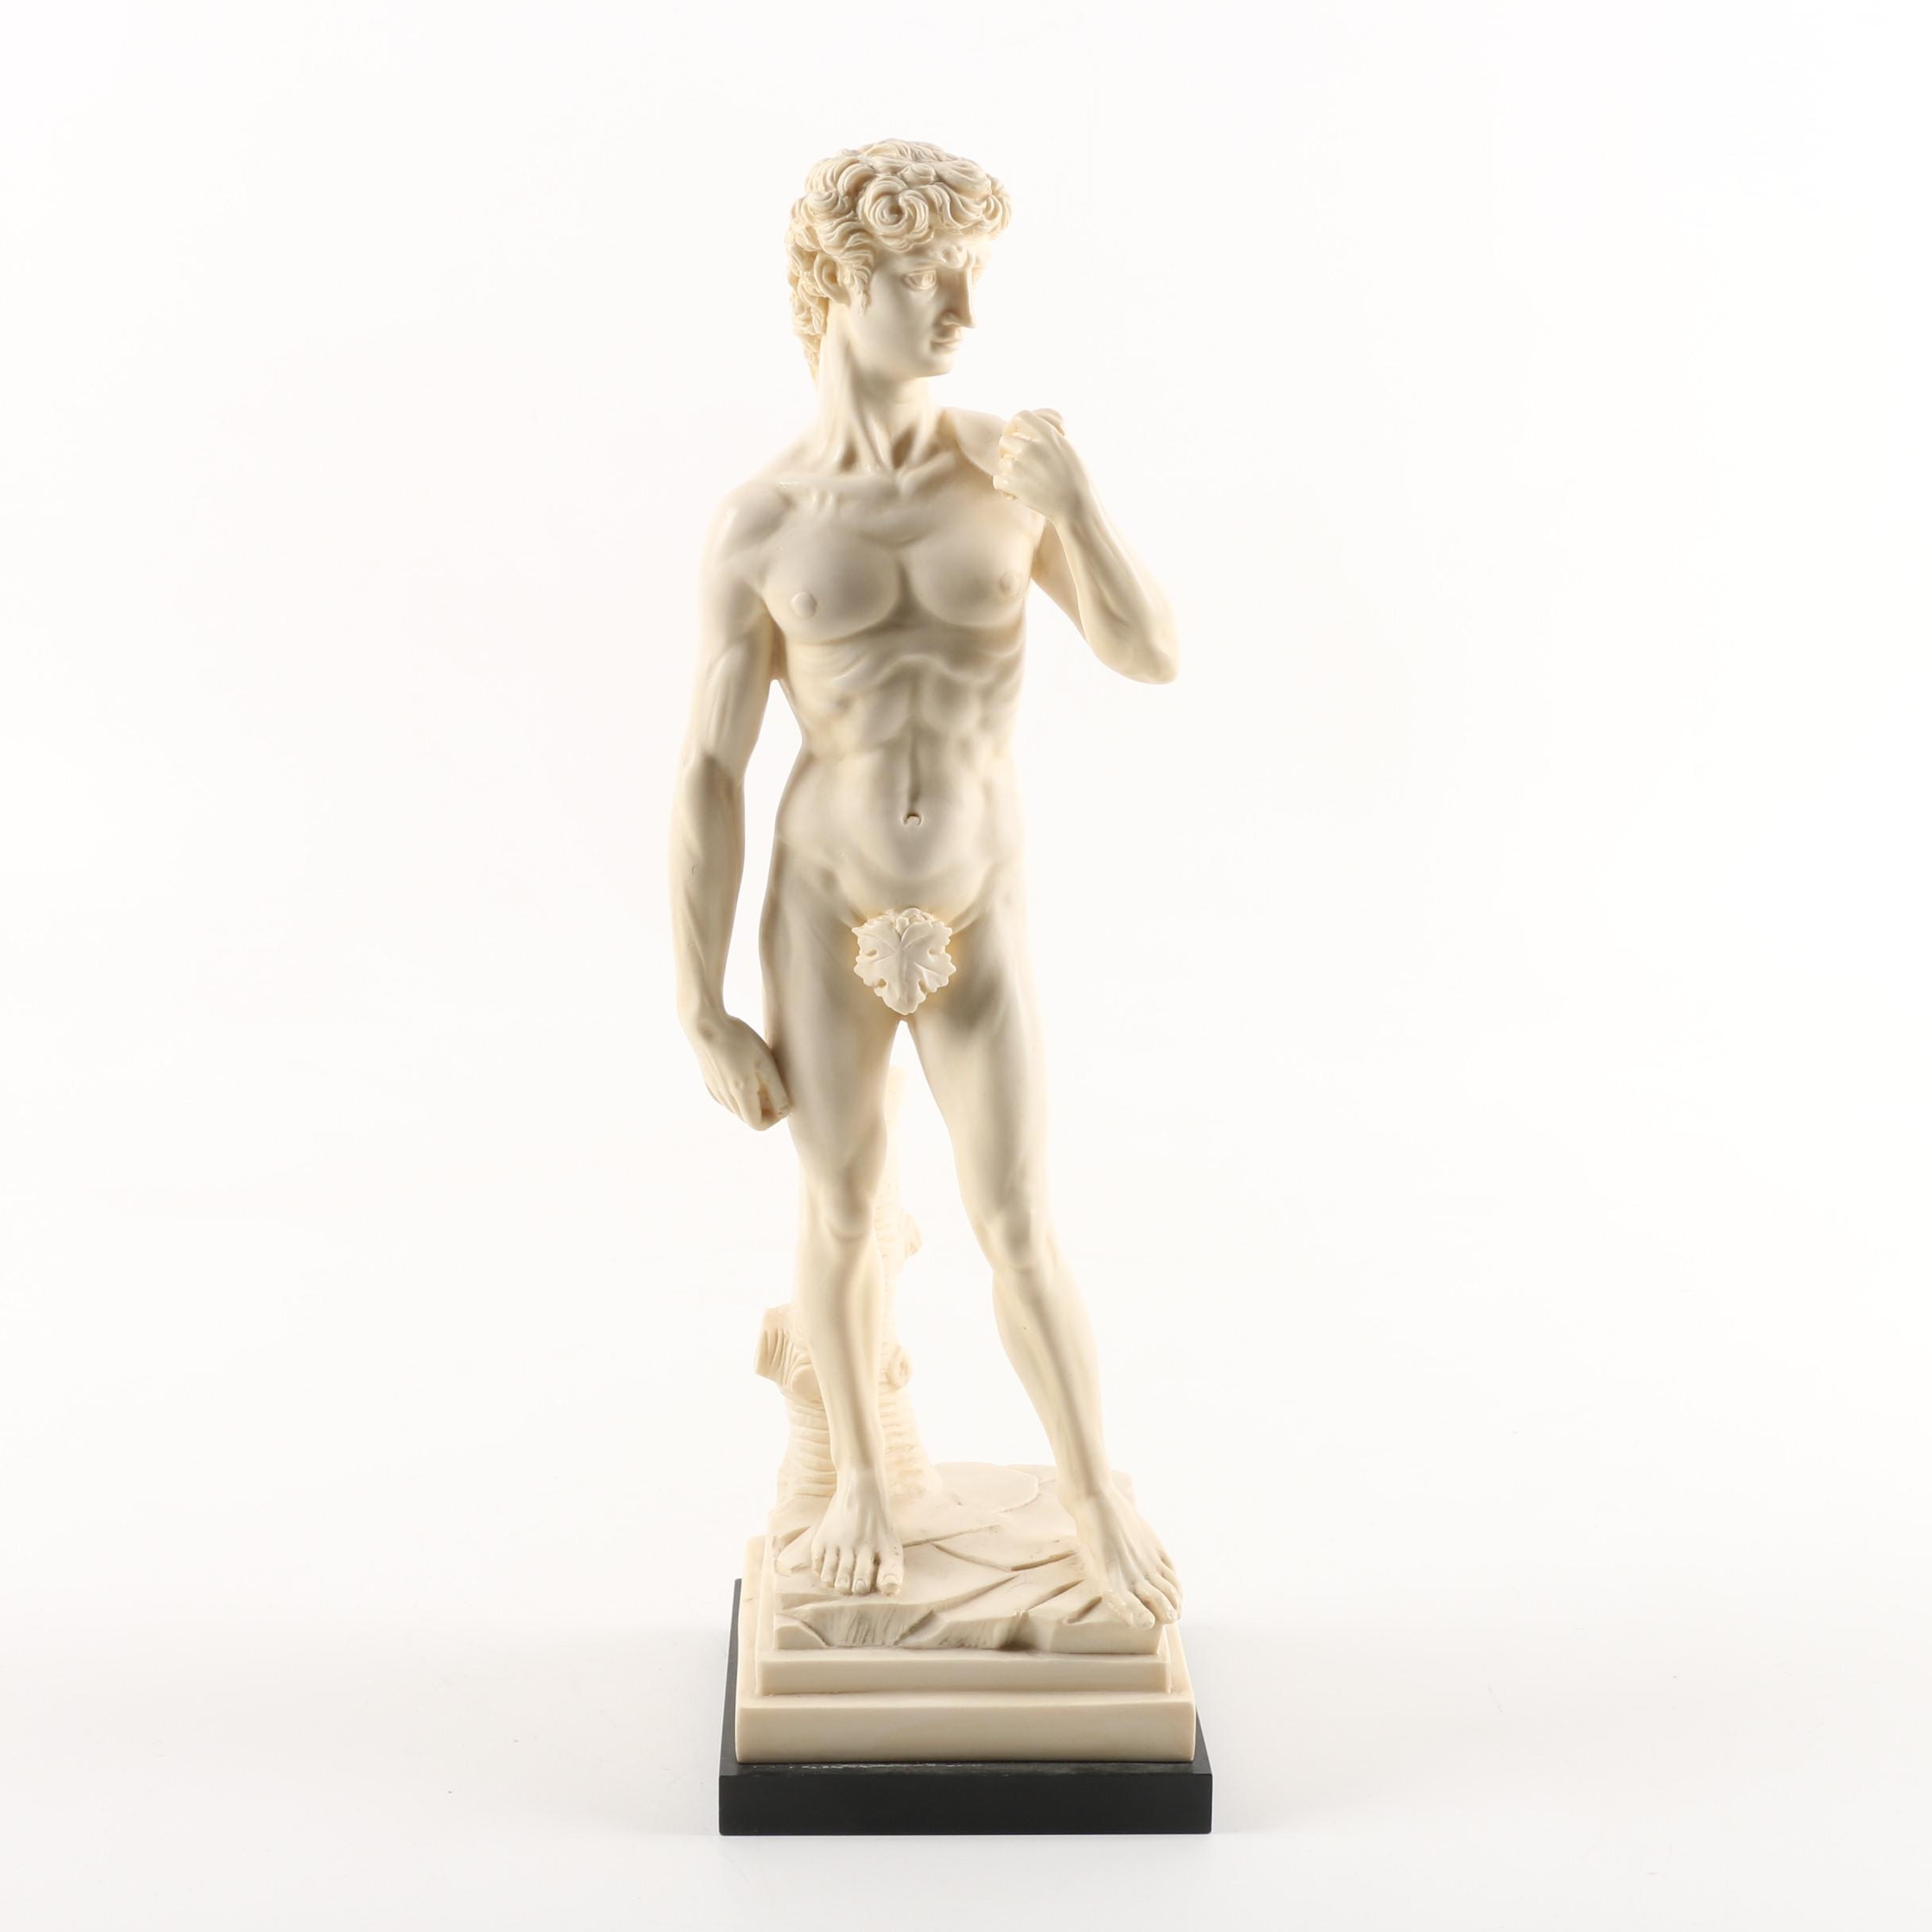 "G. Ruggeri Resin Sculpture After Michelangelo's ""David"""